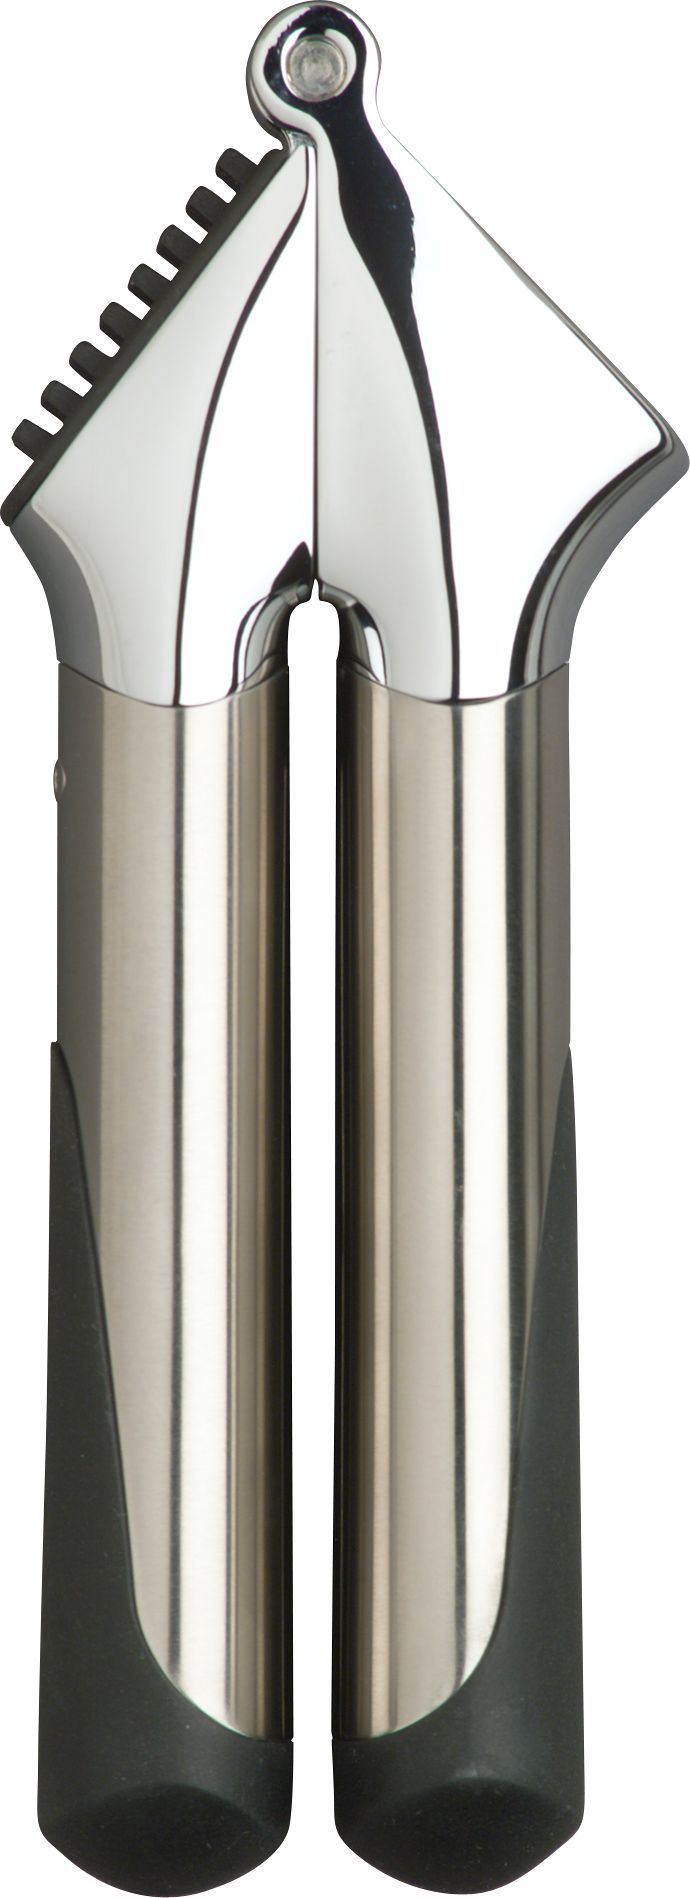 This ultra-modern OXO garlic press squeezes the maximum of pulp and juice from cloves of garlic.  Its hefty, attractive design offers great balance and a comfortable grip.  Minces garlic without peeling ensuring your hands stay odor free.  Easily clean the garlic press by using the reverse action hole cleaner. Polypropylene, stainless steel, Santoprene® and zinc alloyCleaning functionDishwasher-safeMade in China.